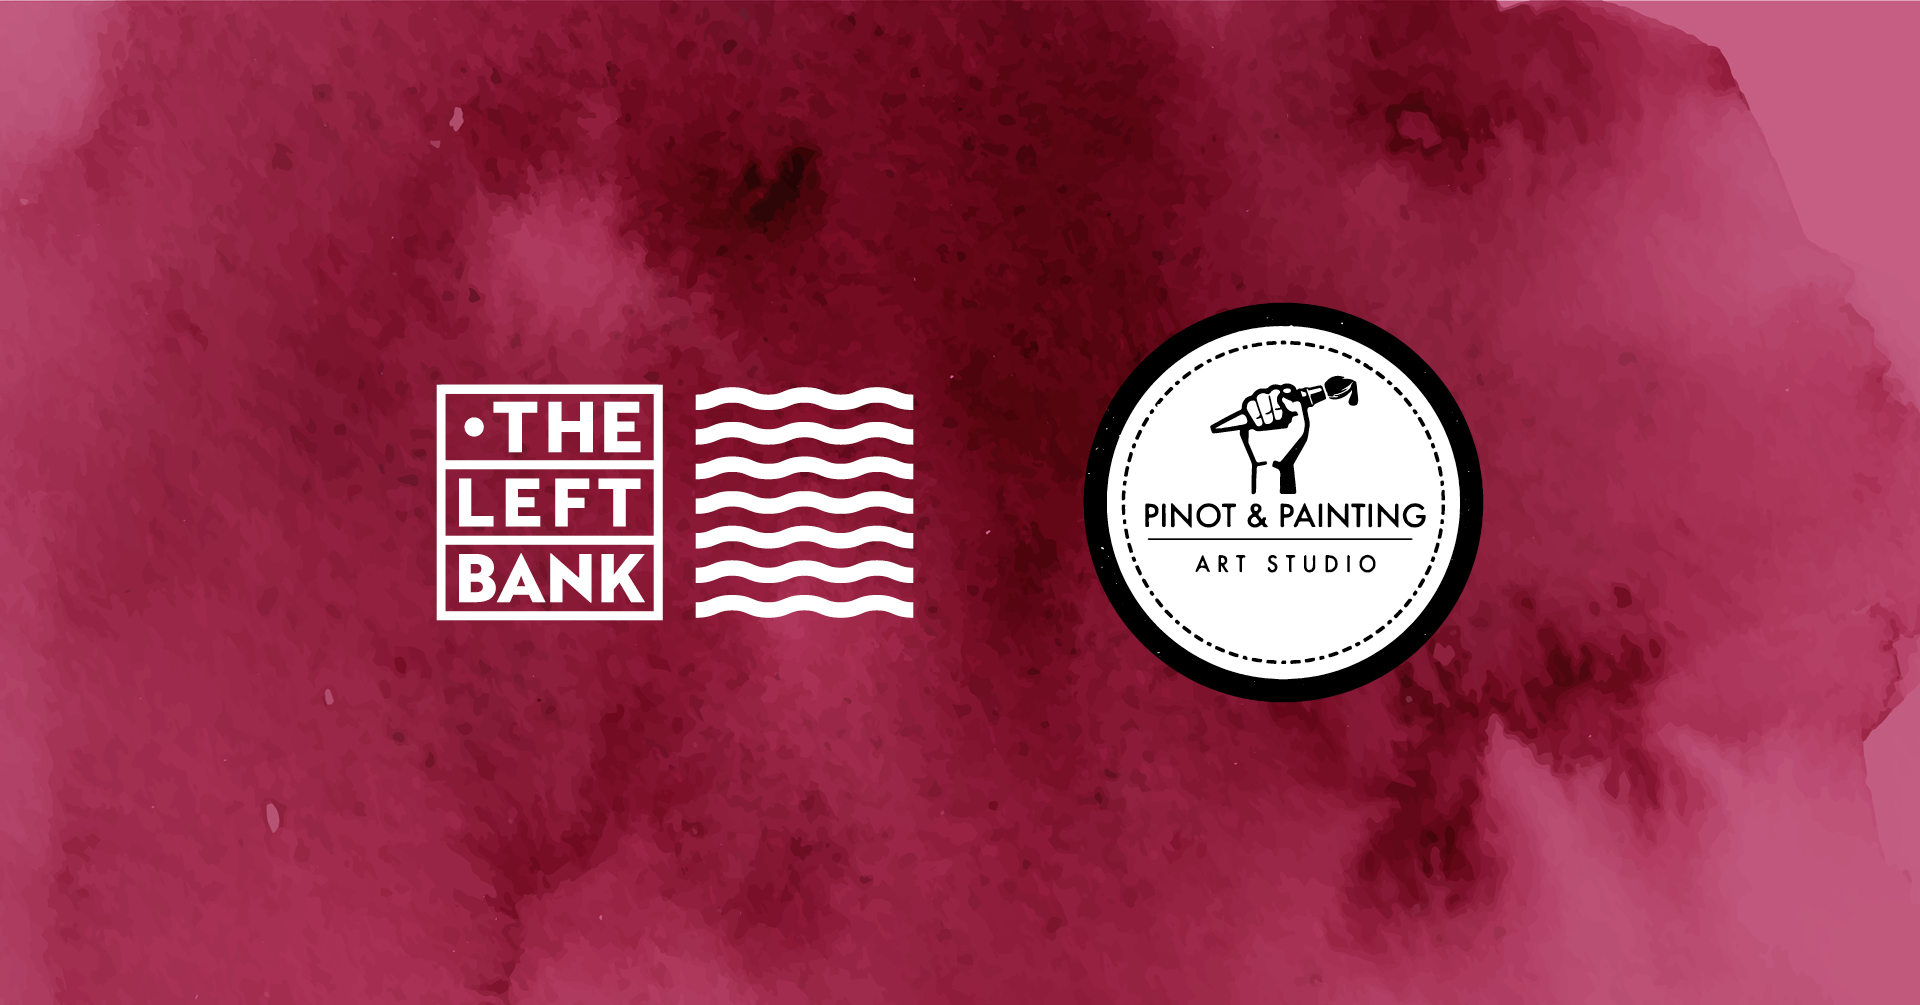 The Left Bank - Pinot & Painting